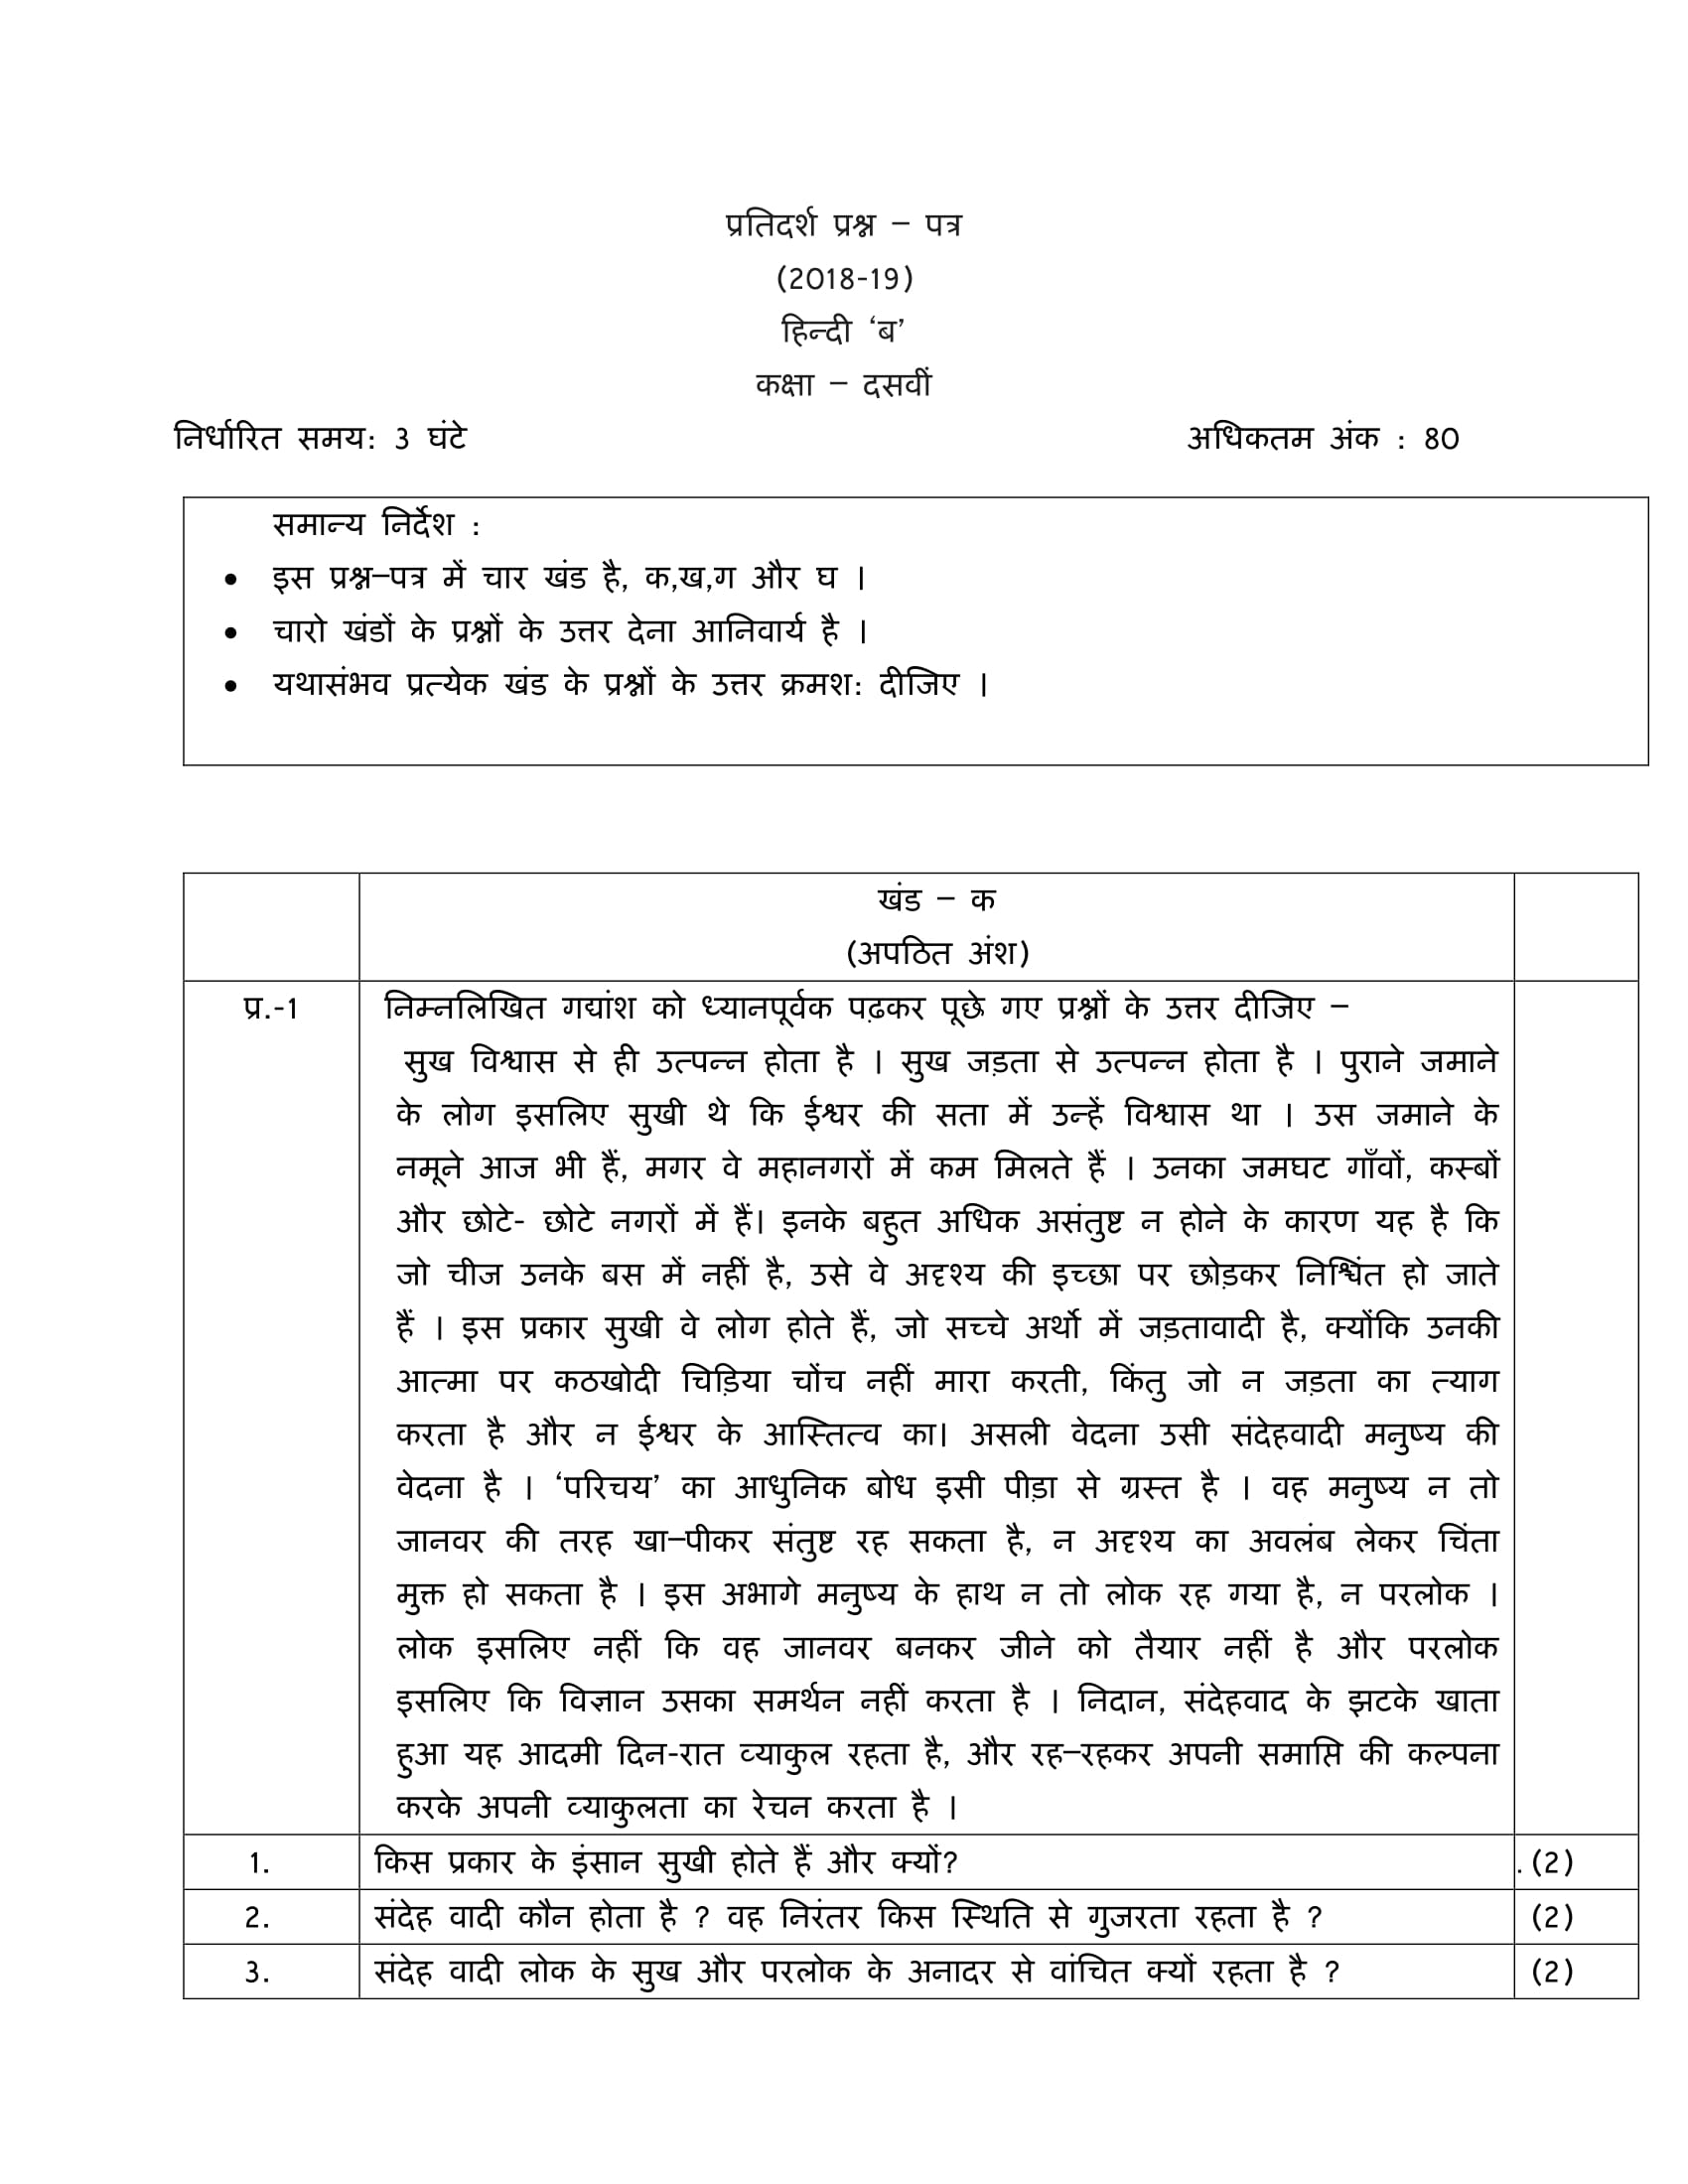 Hindi B Class 10 CBSE Solved Paper with Answers, Marking Scheme PDF Download 2019 – Official